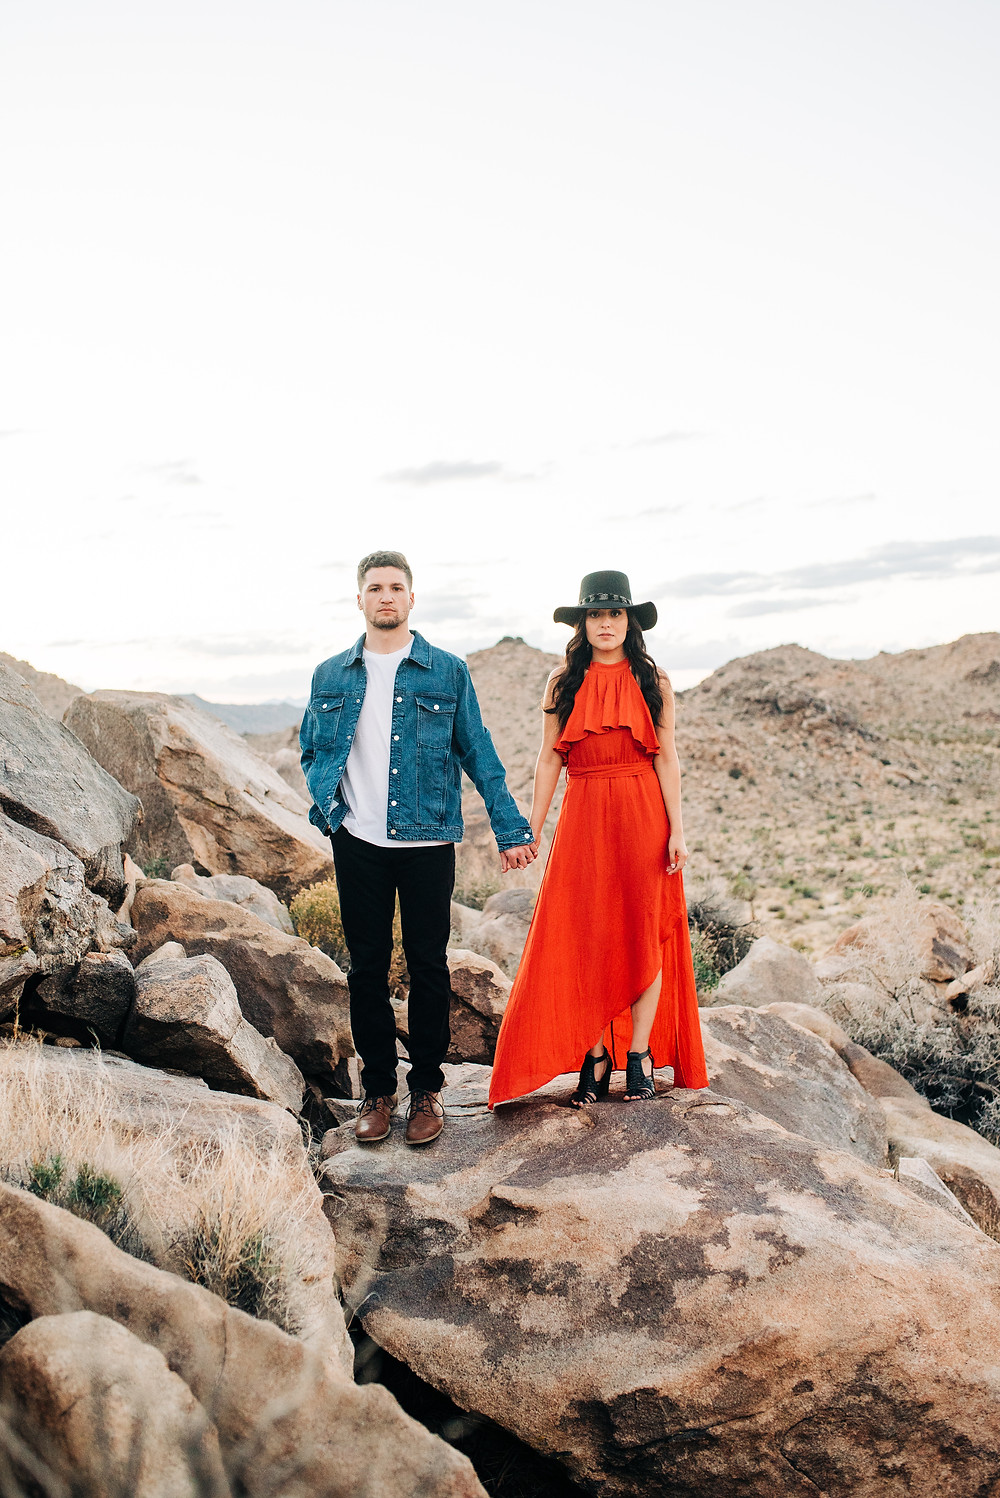 Stylish Joshua Tree Engagement Photos - Corona, Ca wedding and portrait photographer